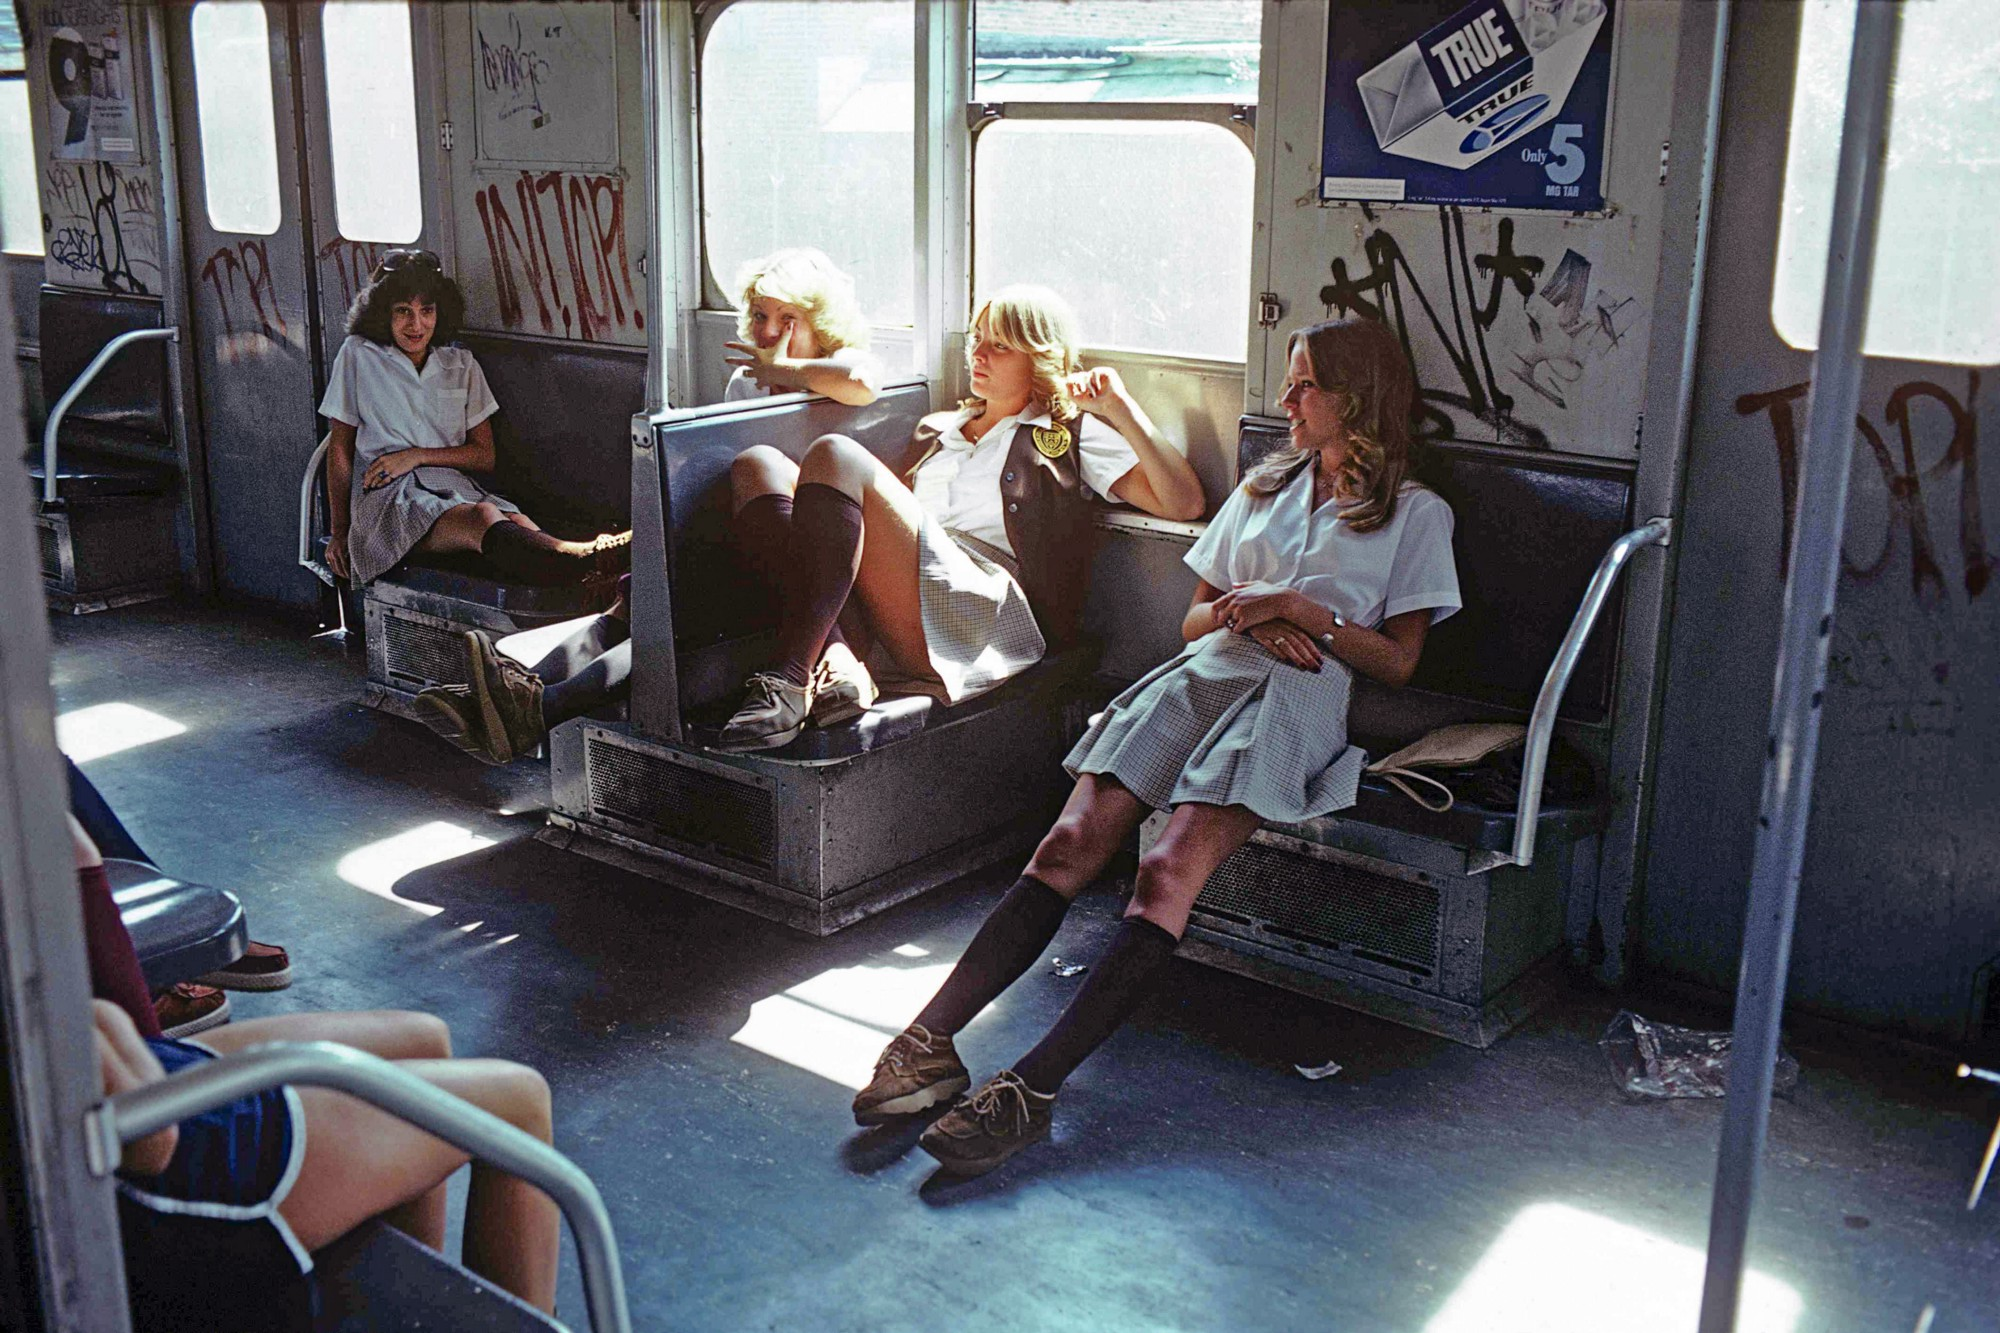 Schoolgirls on the A Train to Far Rockaway, Queens Subway New York, NY, 1977-1985, Copyright by Willy Spiller